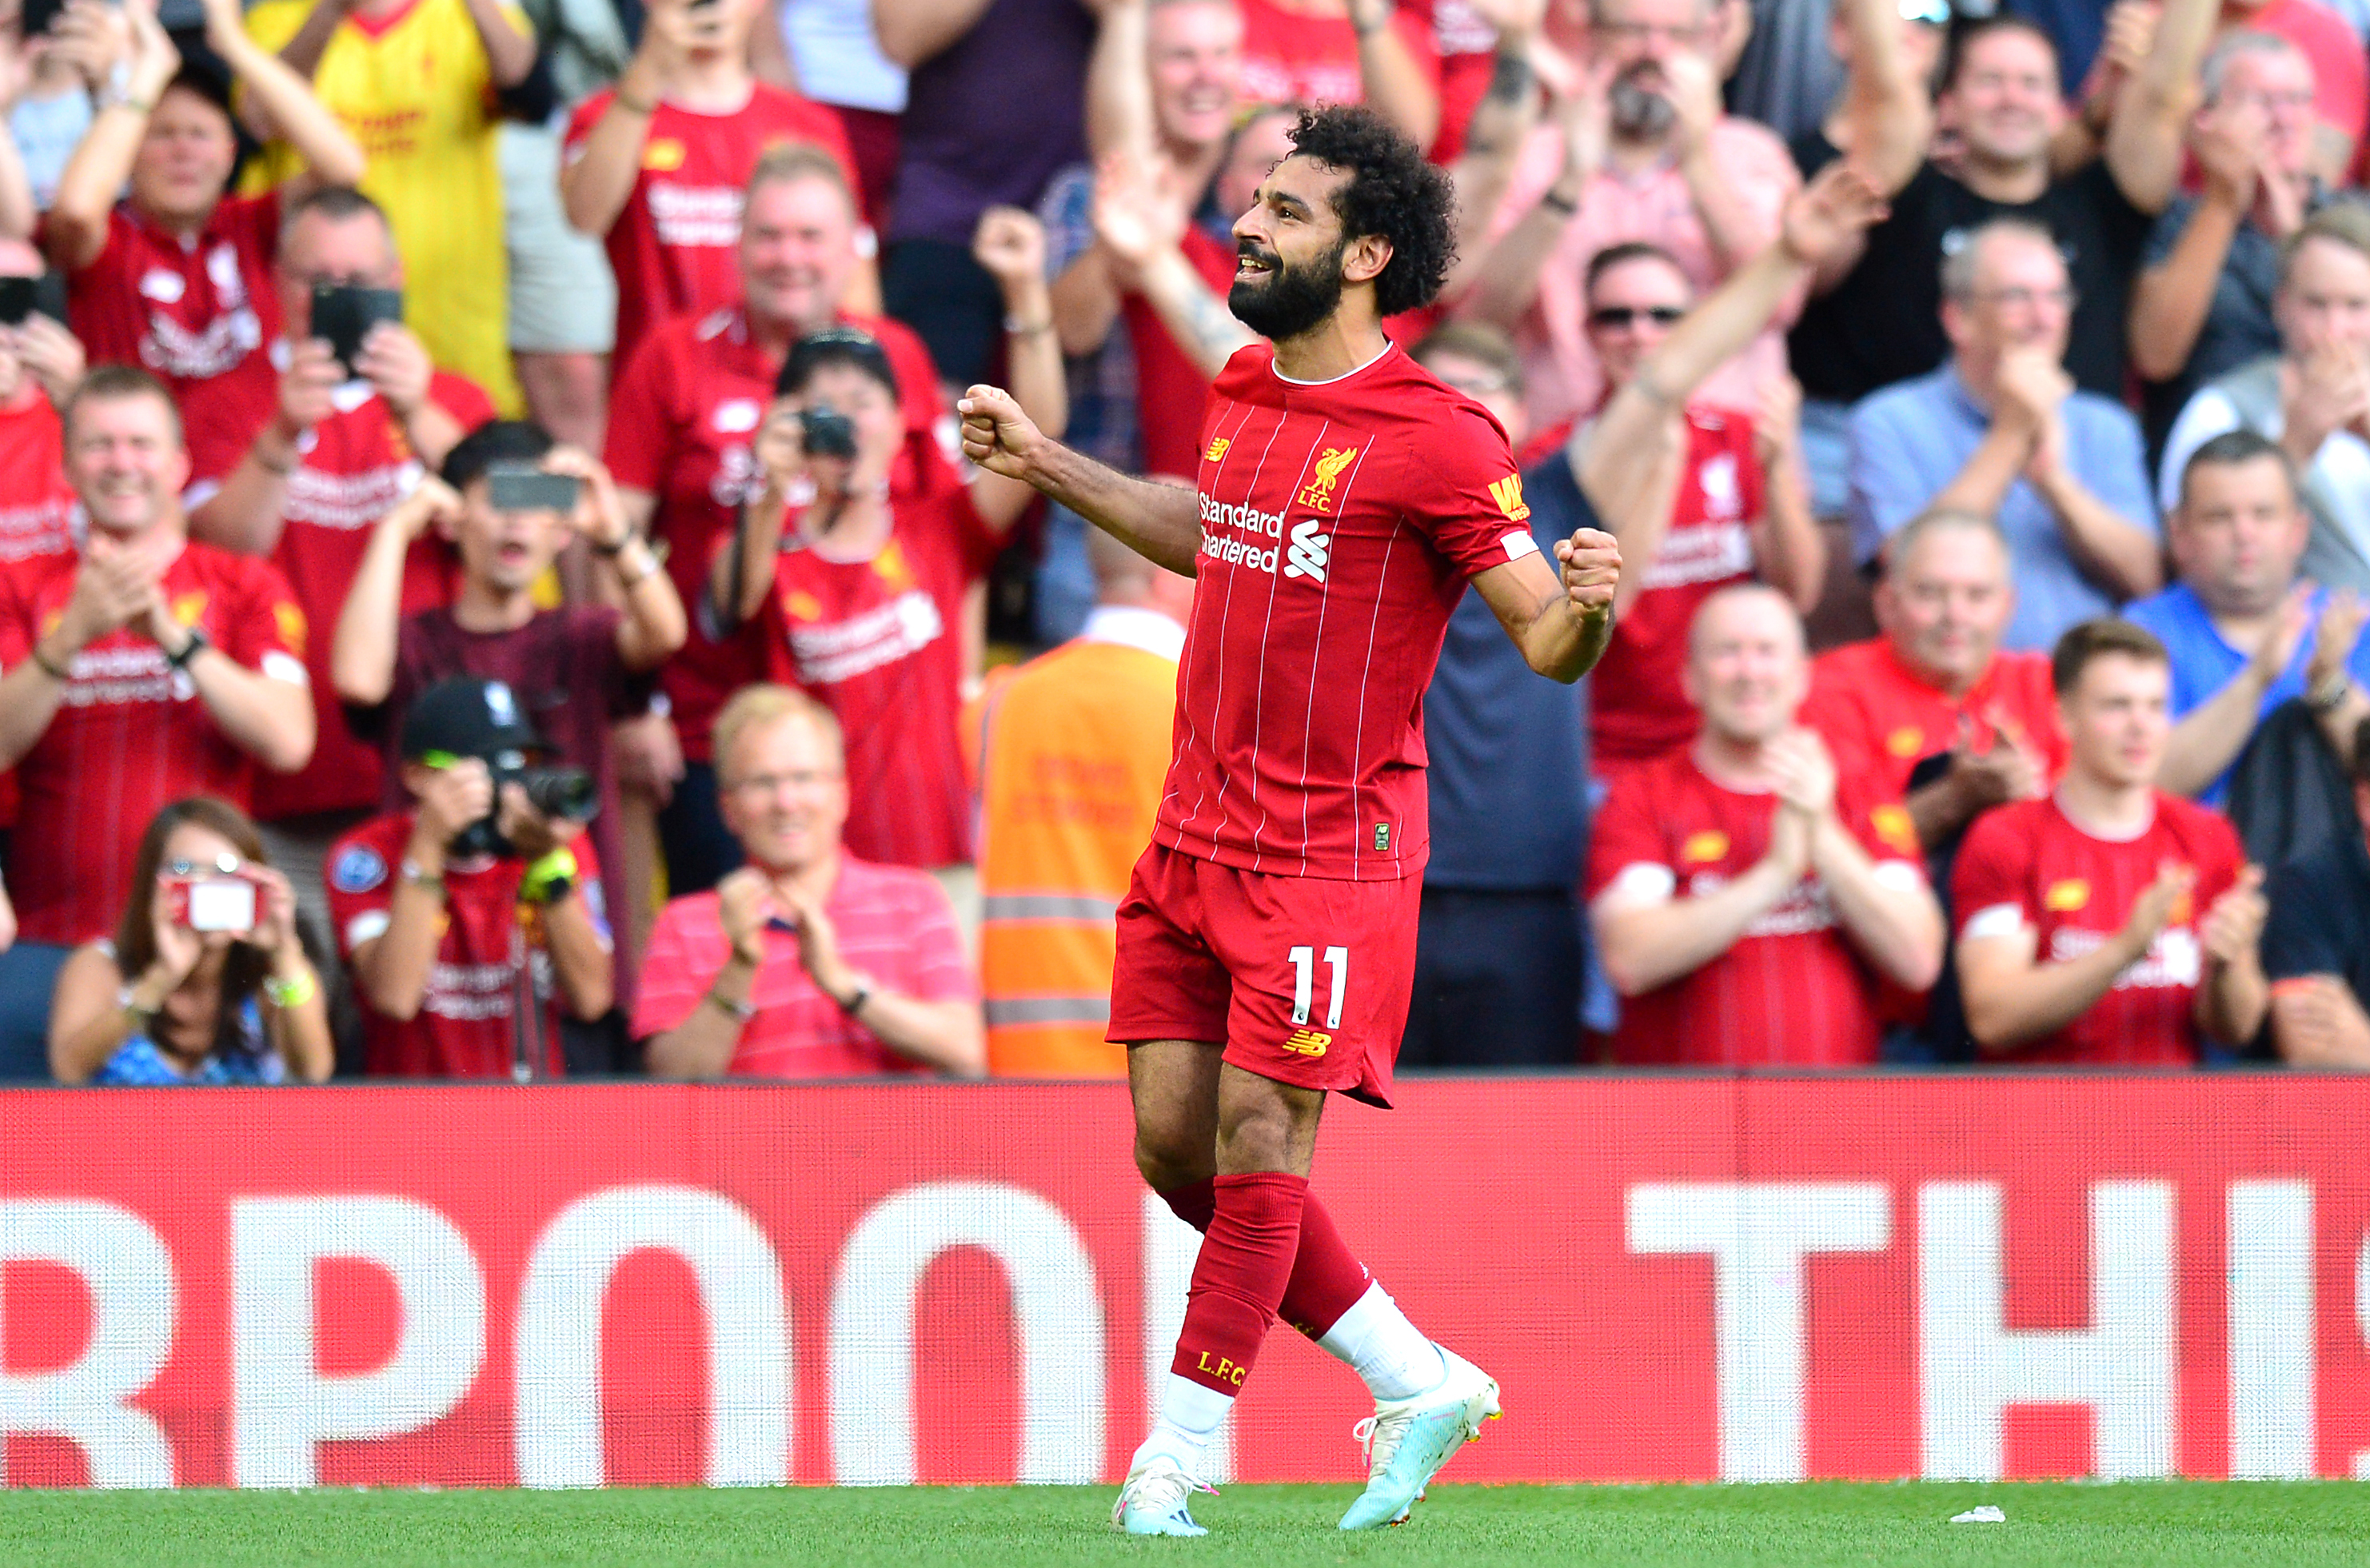 Salah nets a brace as Liverpool down Elneny's Arsenal 3-1